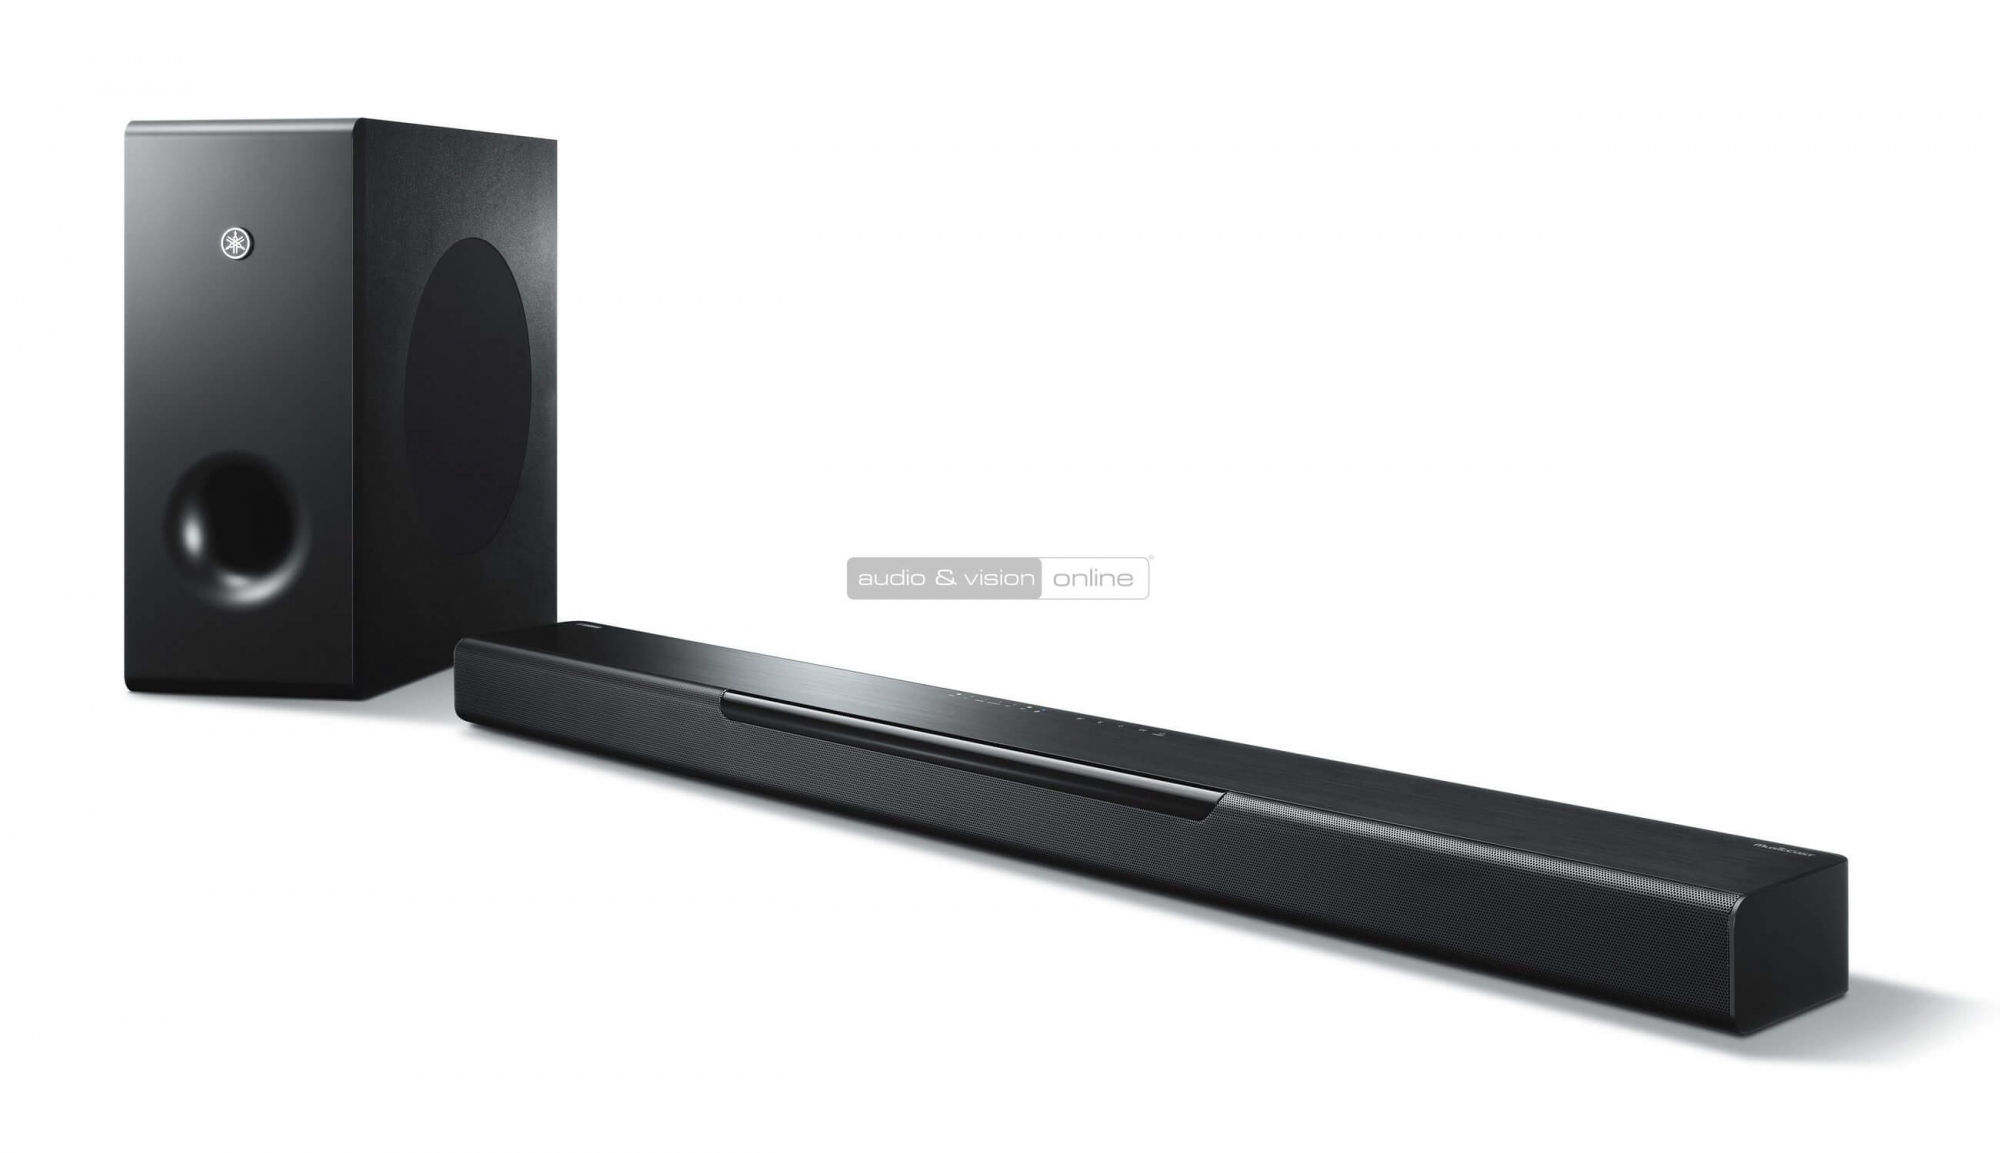 yamaha musiccast bar 400 yas 408 soundbar teszt av. Black Bedroom Furniture Sets. Home Design Ideas